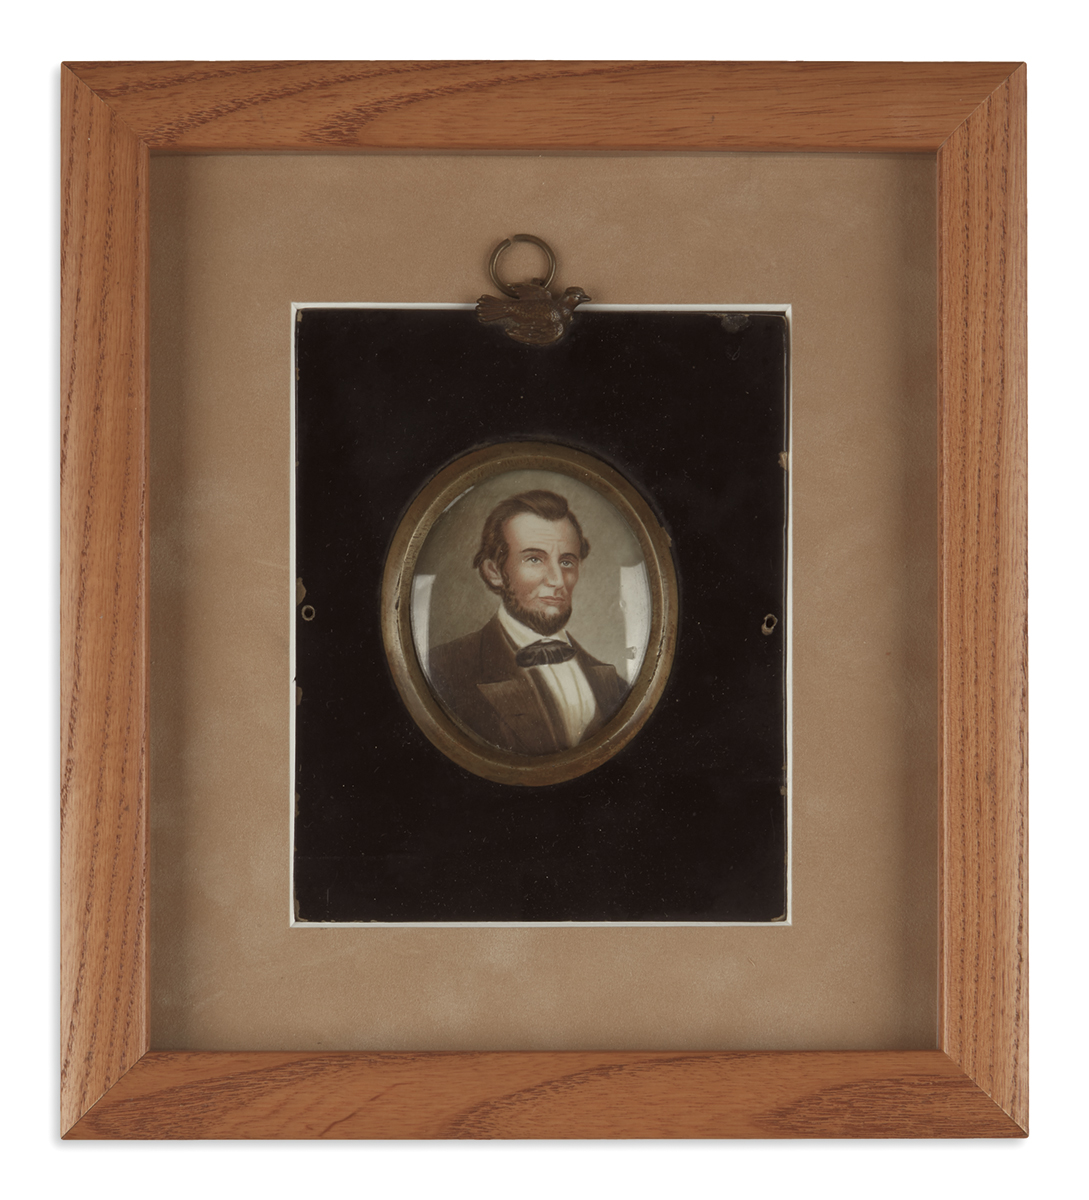 (PAINTINGS)-Unsigned-miniature-portrait-of-Lincoln-on-glass